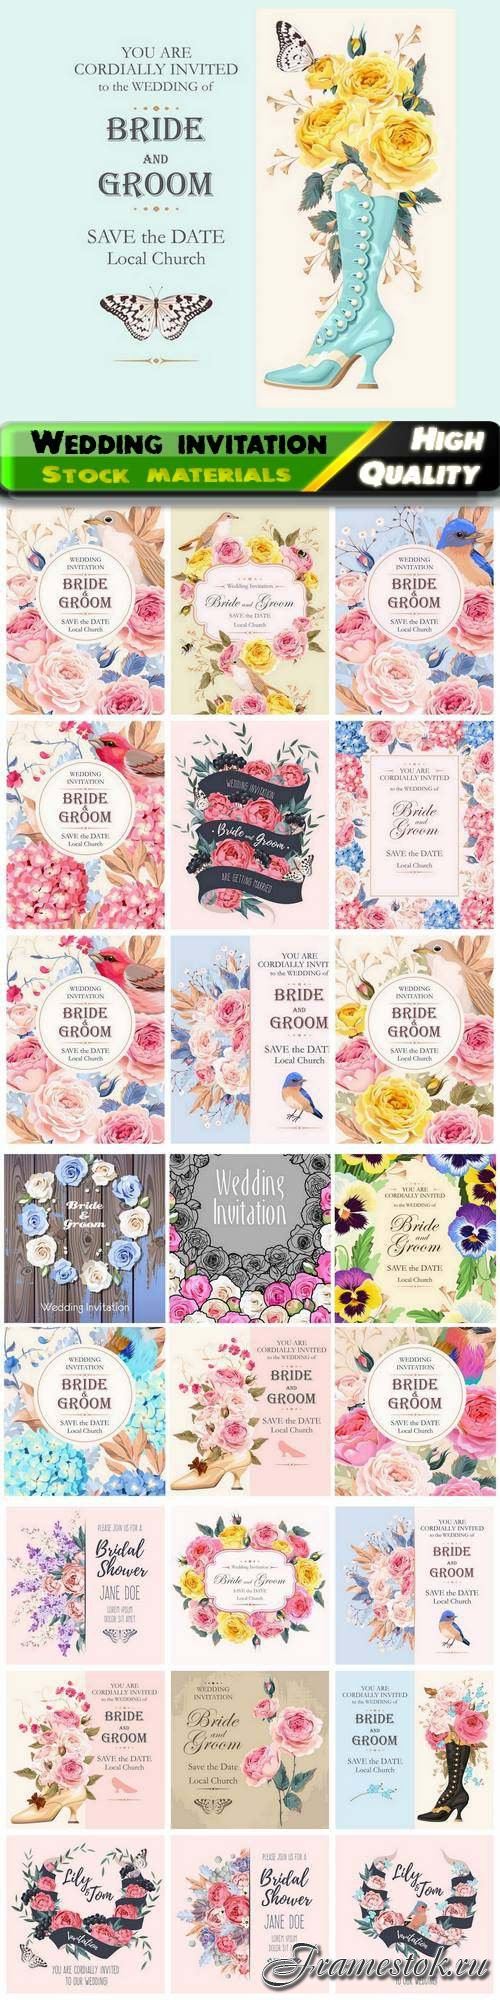 Floral frame for romantic wedding invitation with save date 25 Eps